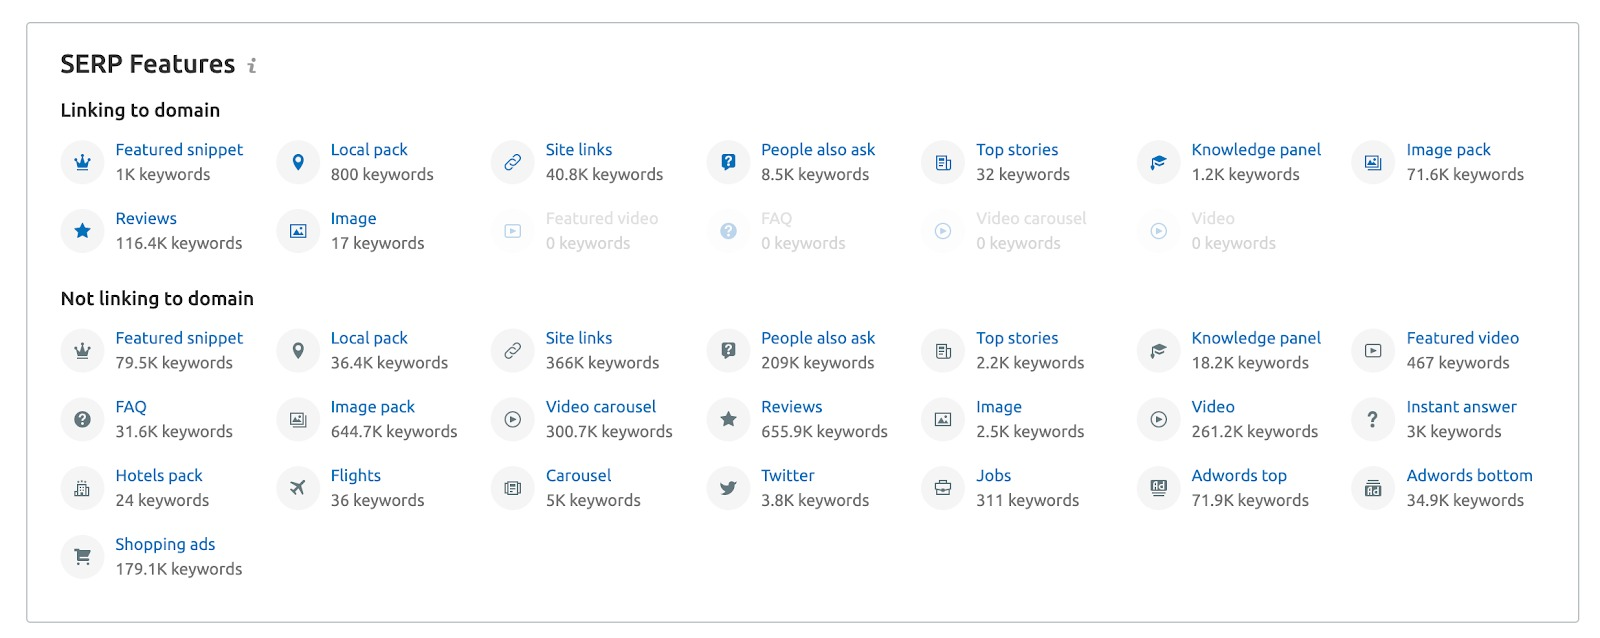 What Semrush Tools Can I Use to Research SERP Features? image 3